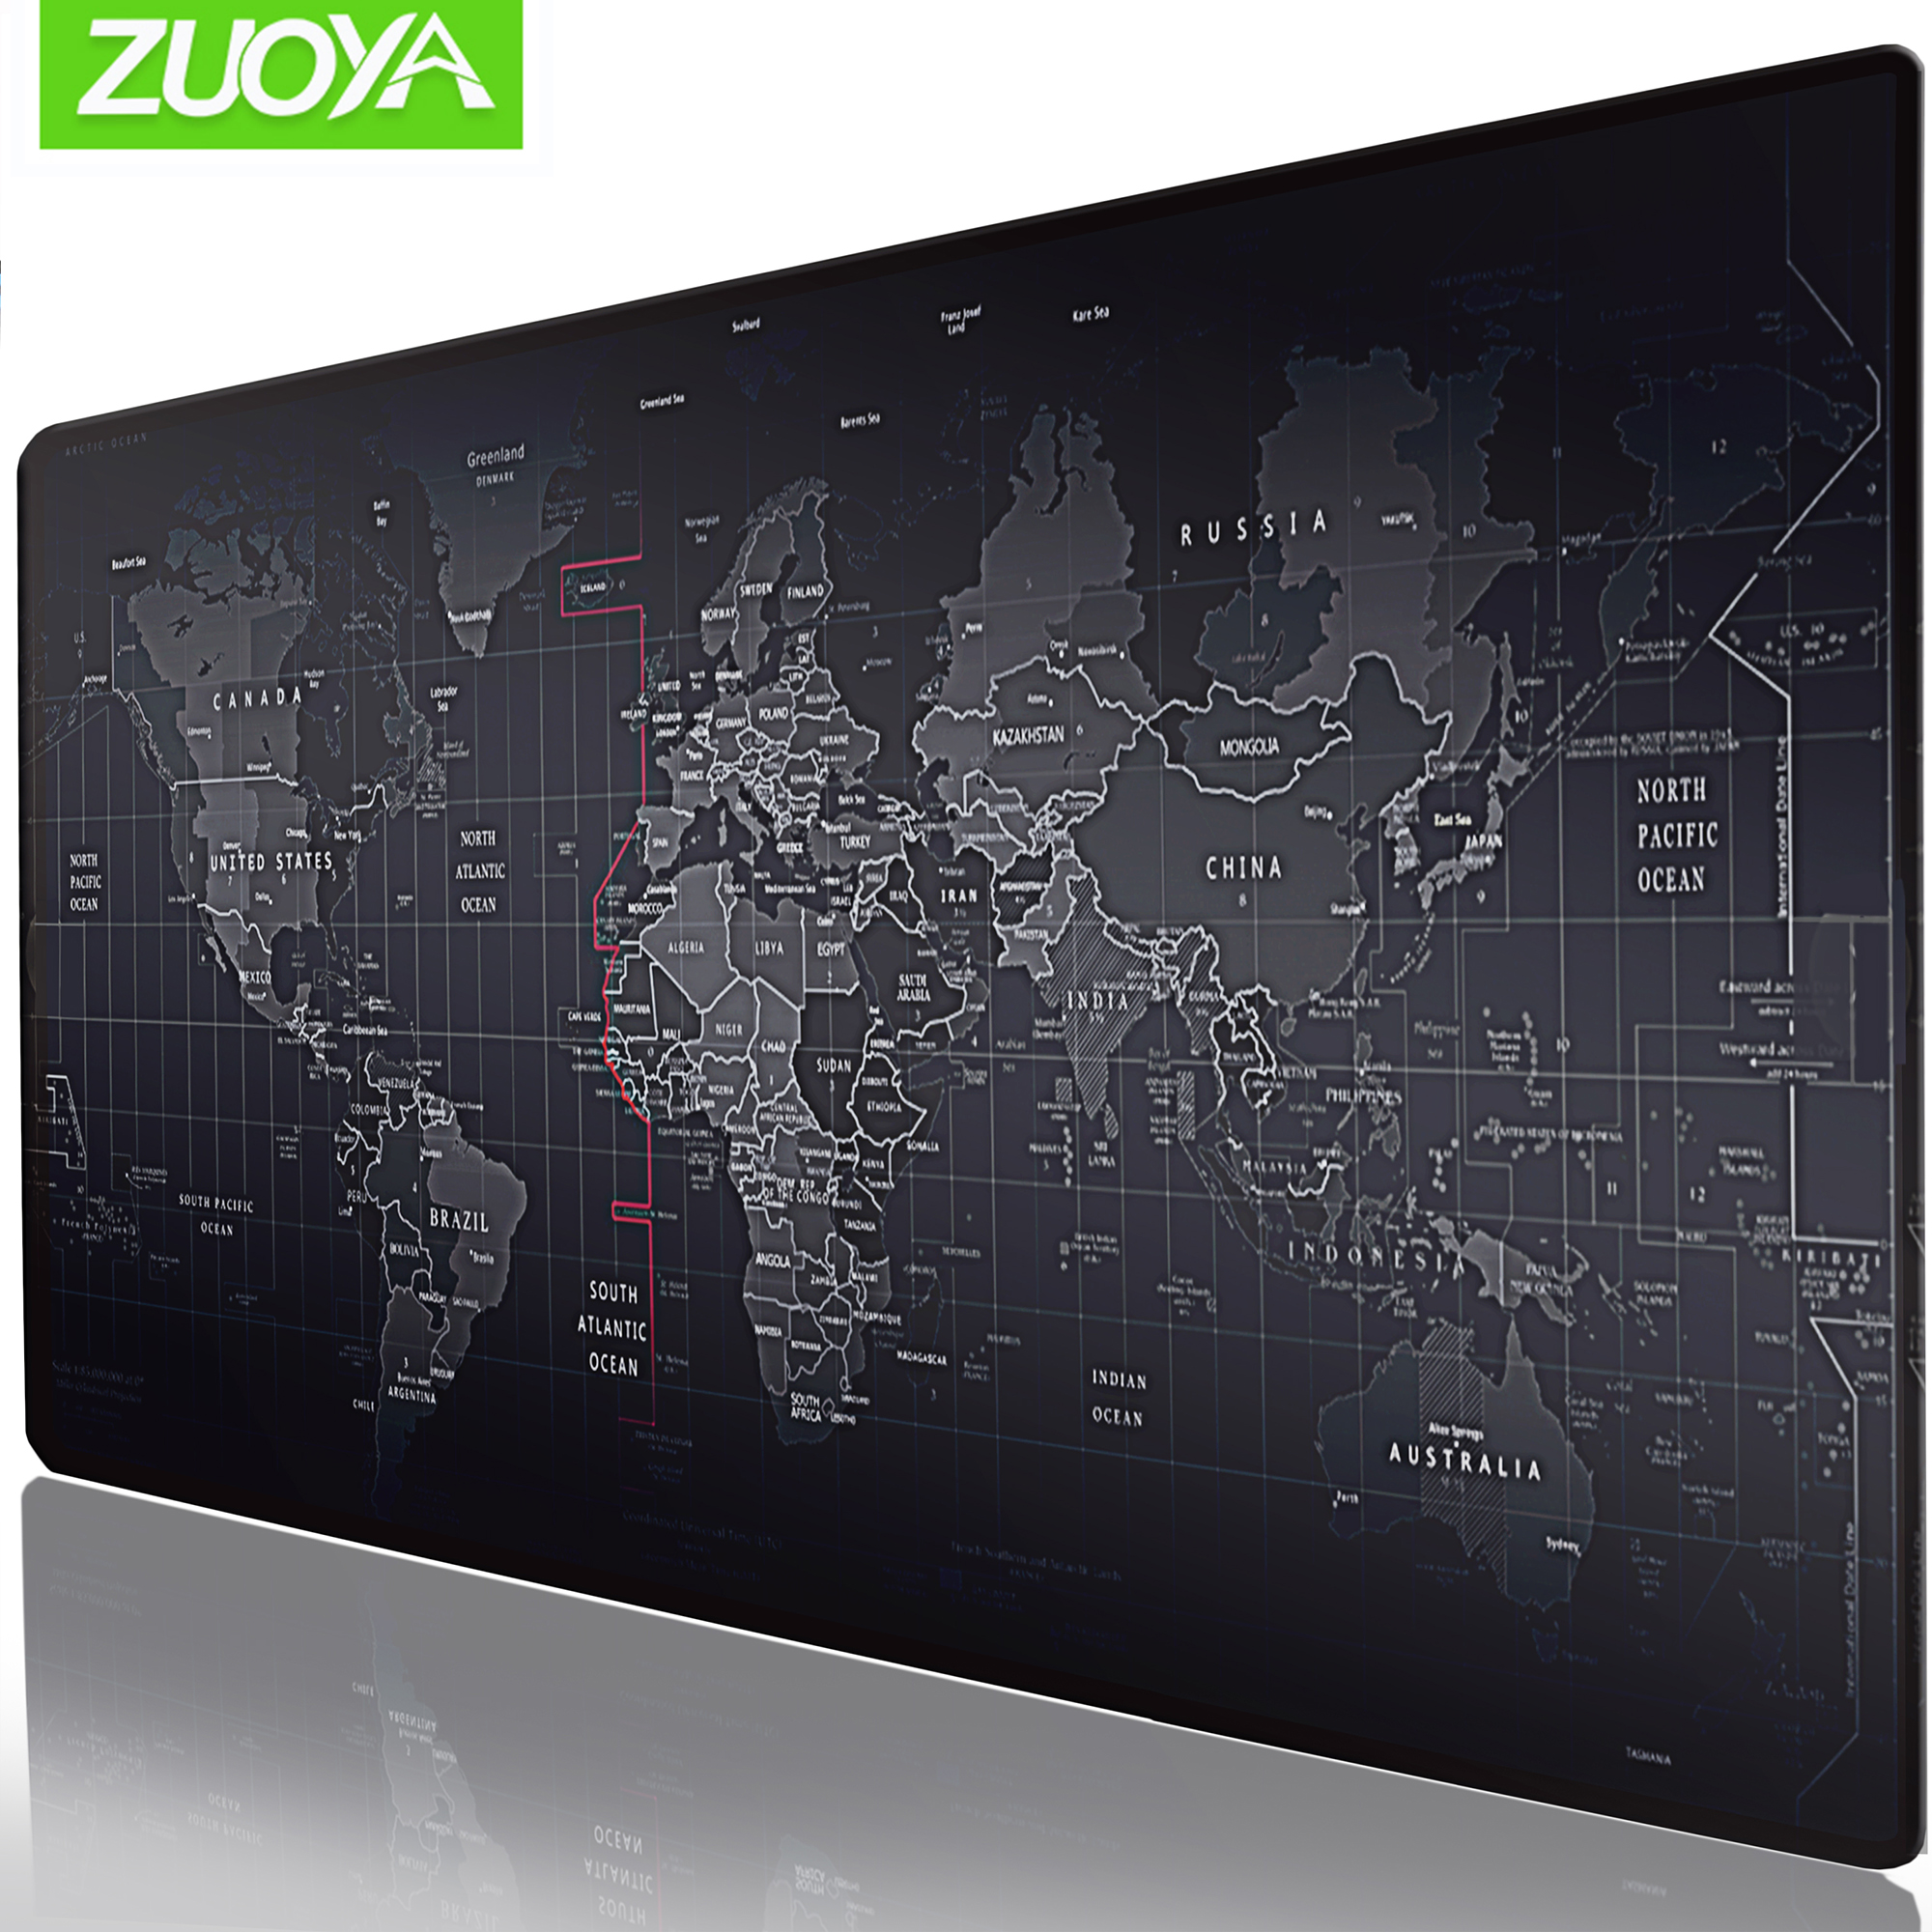 ZUOYA Extra Large Gaming Mouse Pad World Map Locking Edge Mouse Mat Gaming Mouse Anti-slip Rubber Mousepad For Game Laptop PC